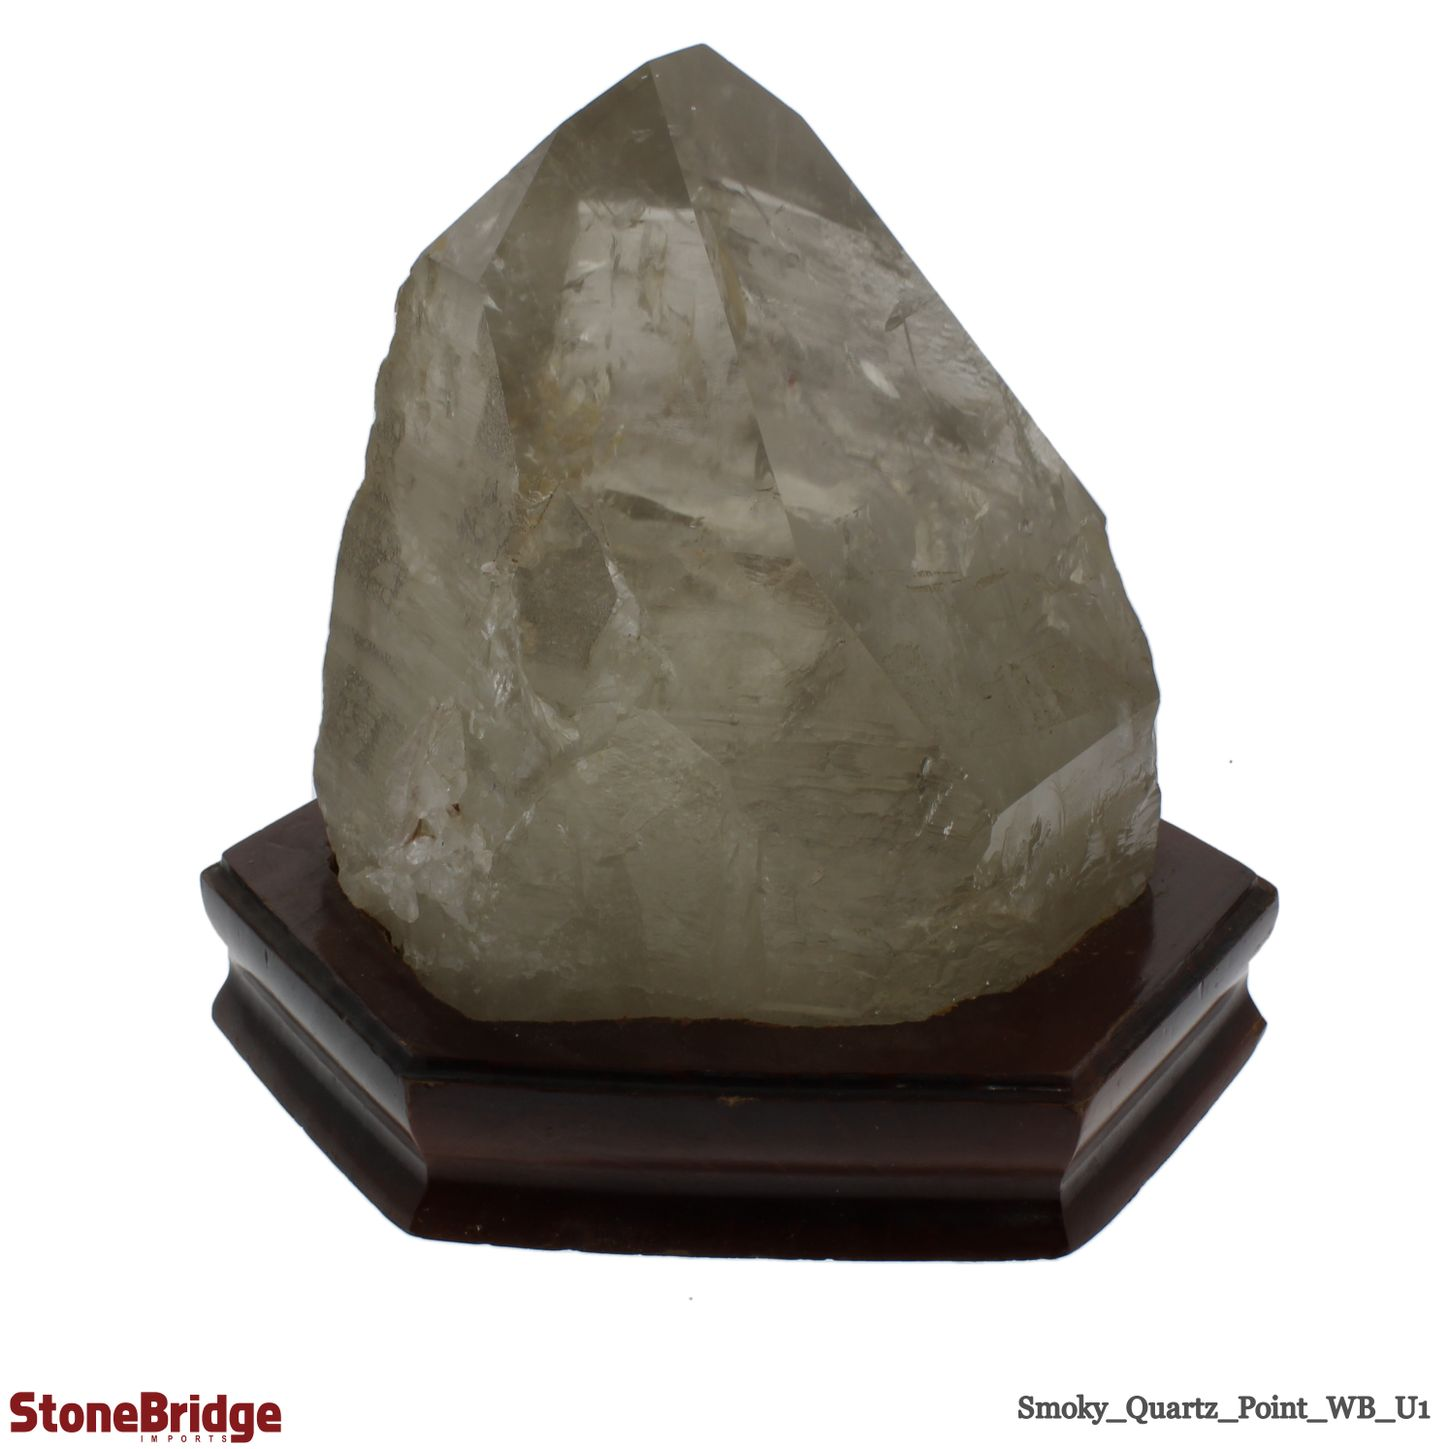 POSQWBU01_Smoky_Quartz_Point_WB_U1_2.jpg